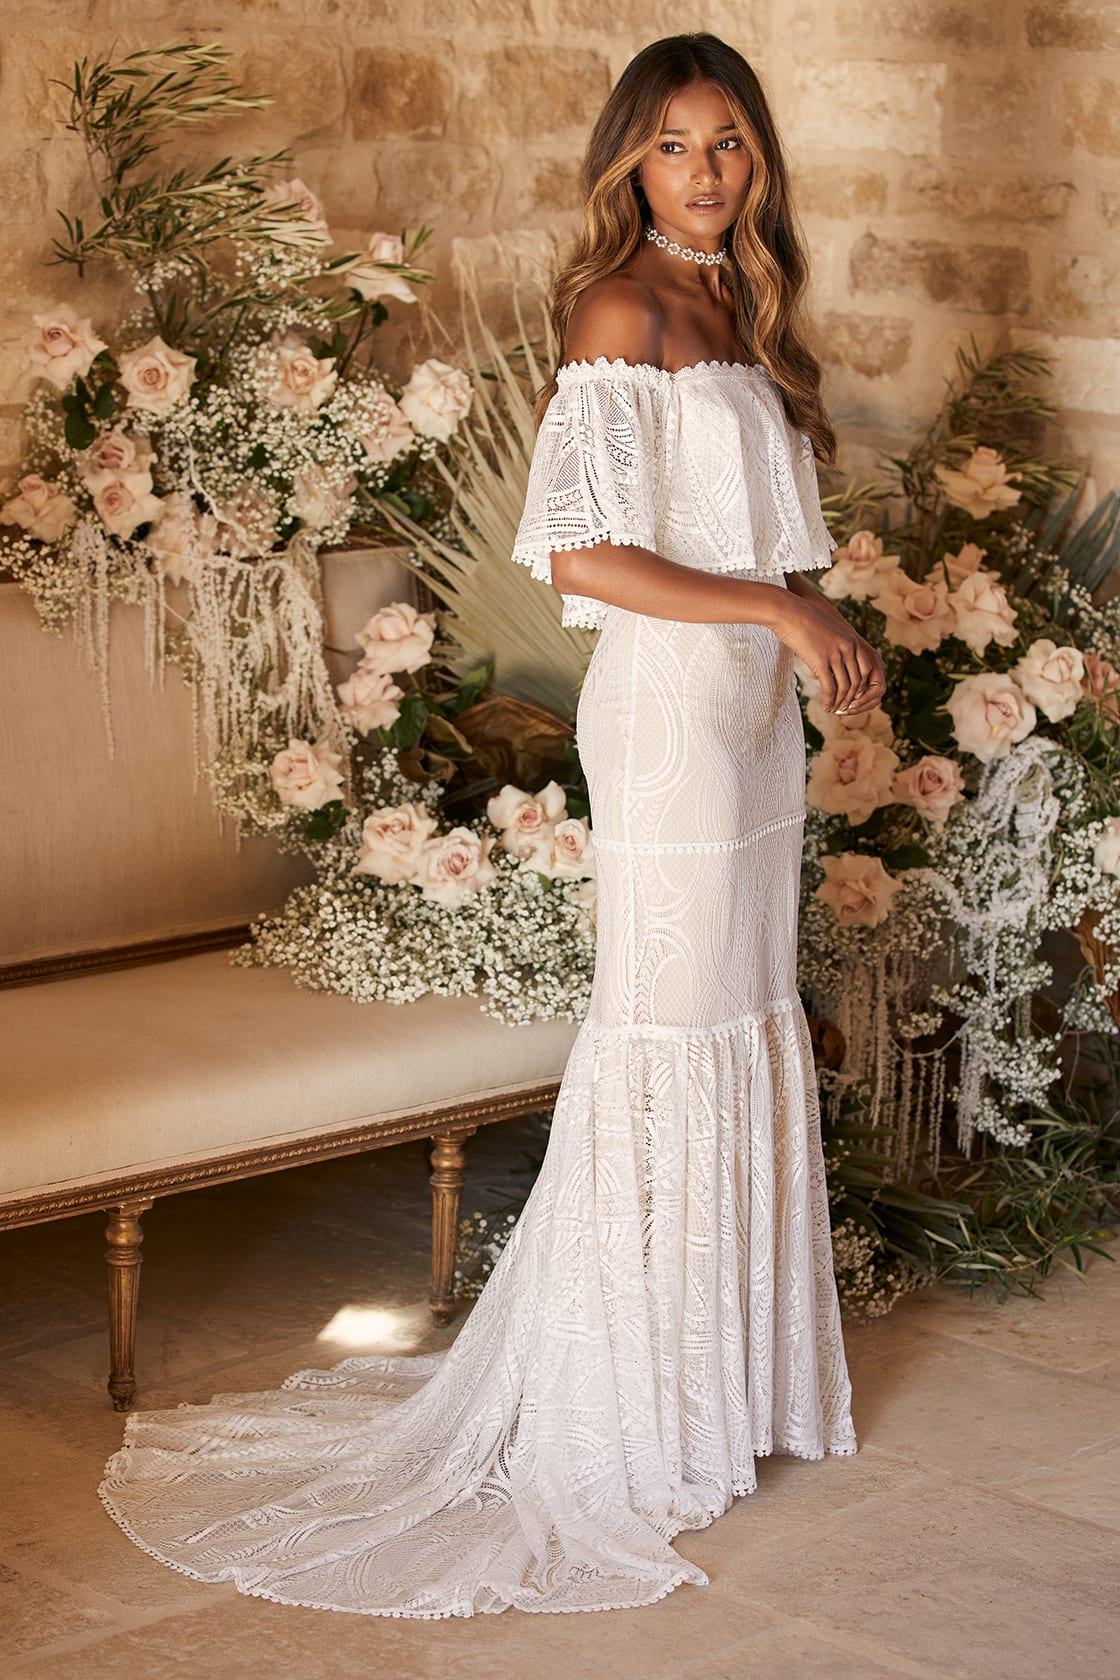 In My Life White Lace Off-the-Shoulder Mermaid Maxi Dress